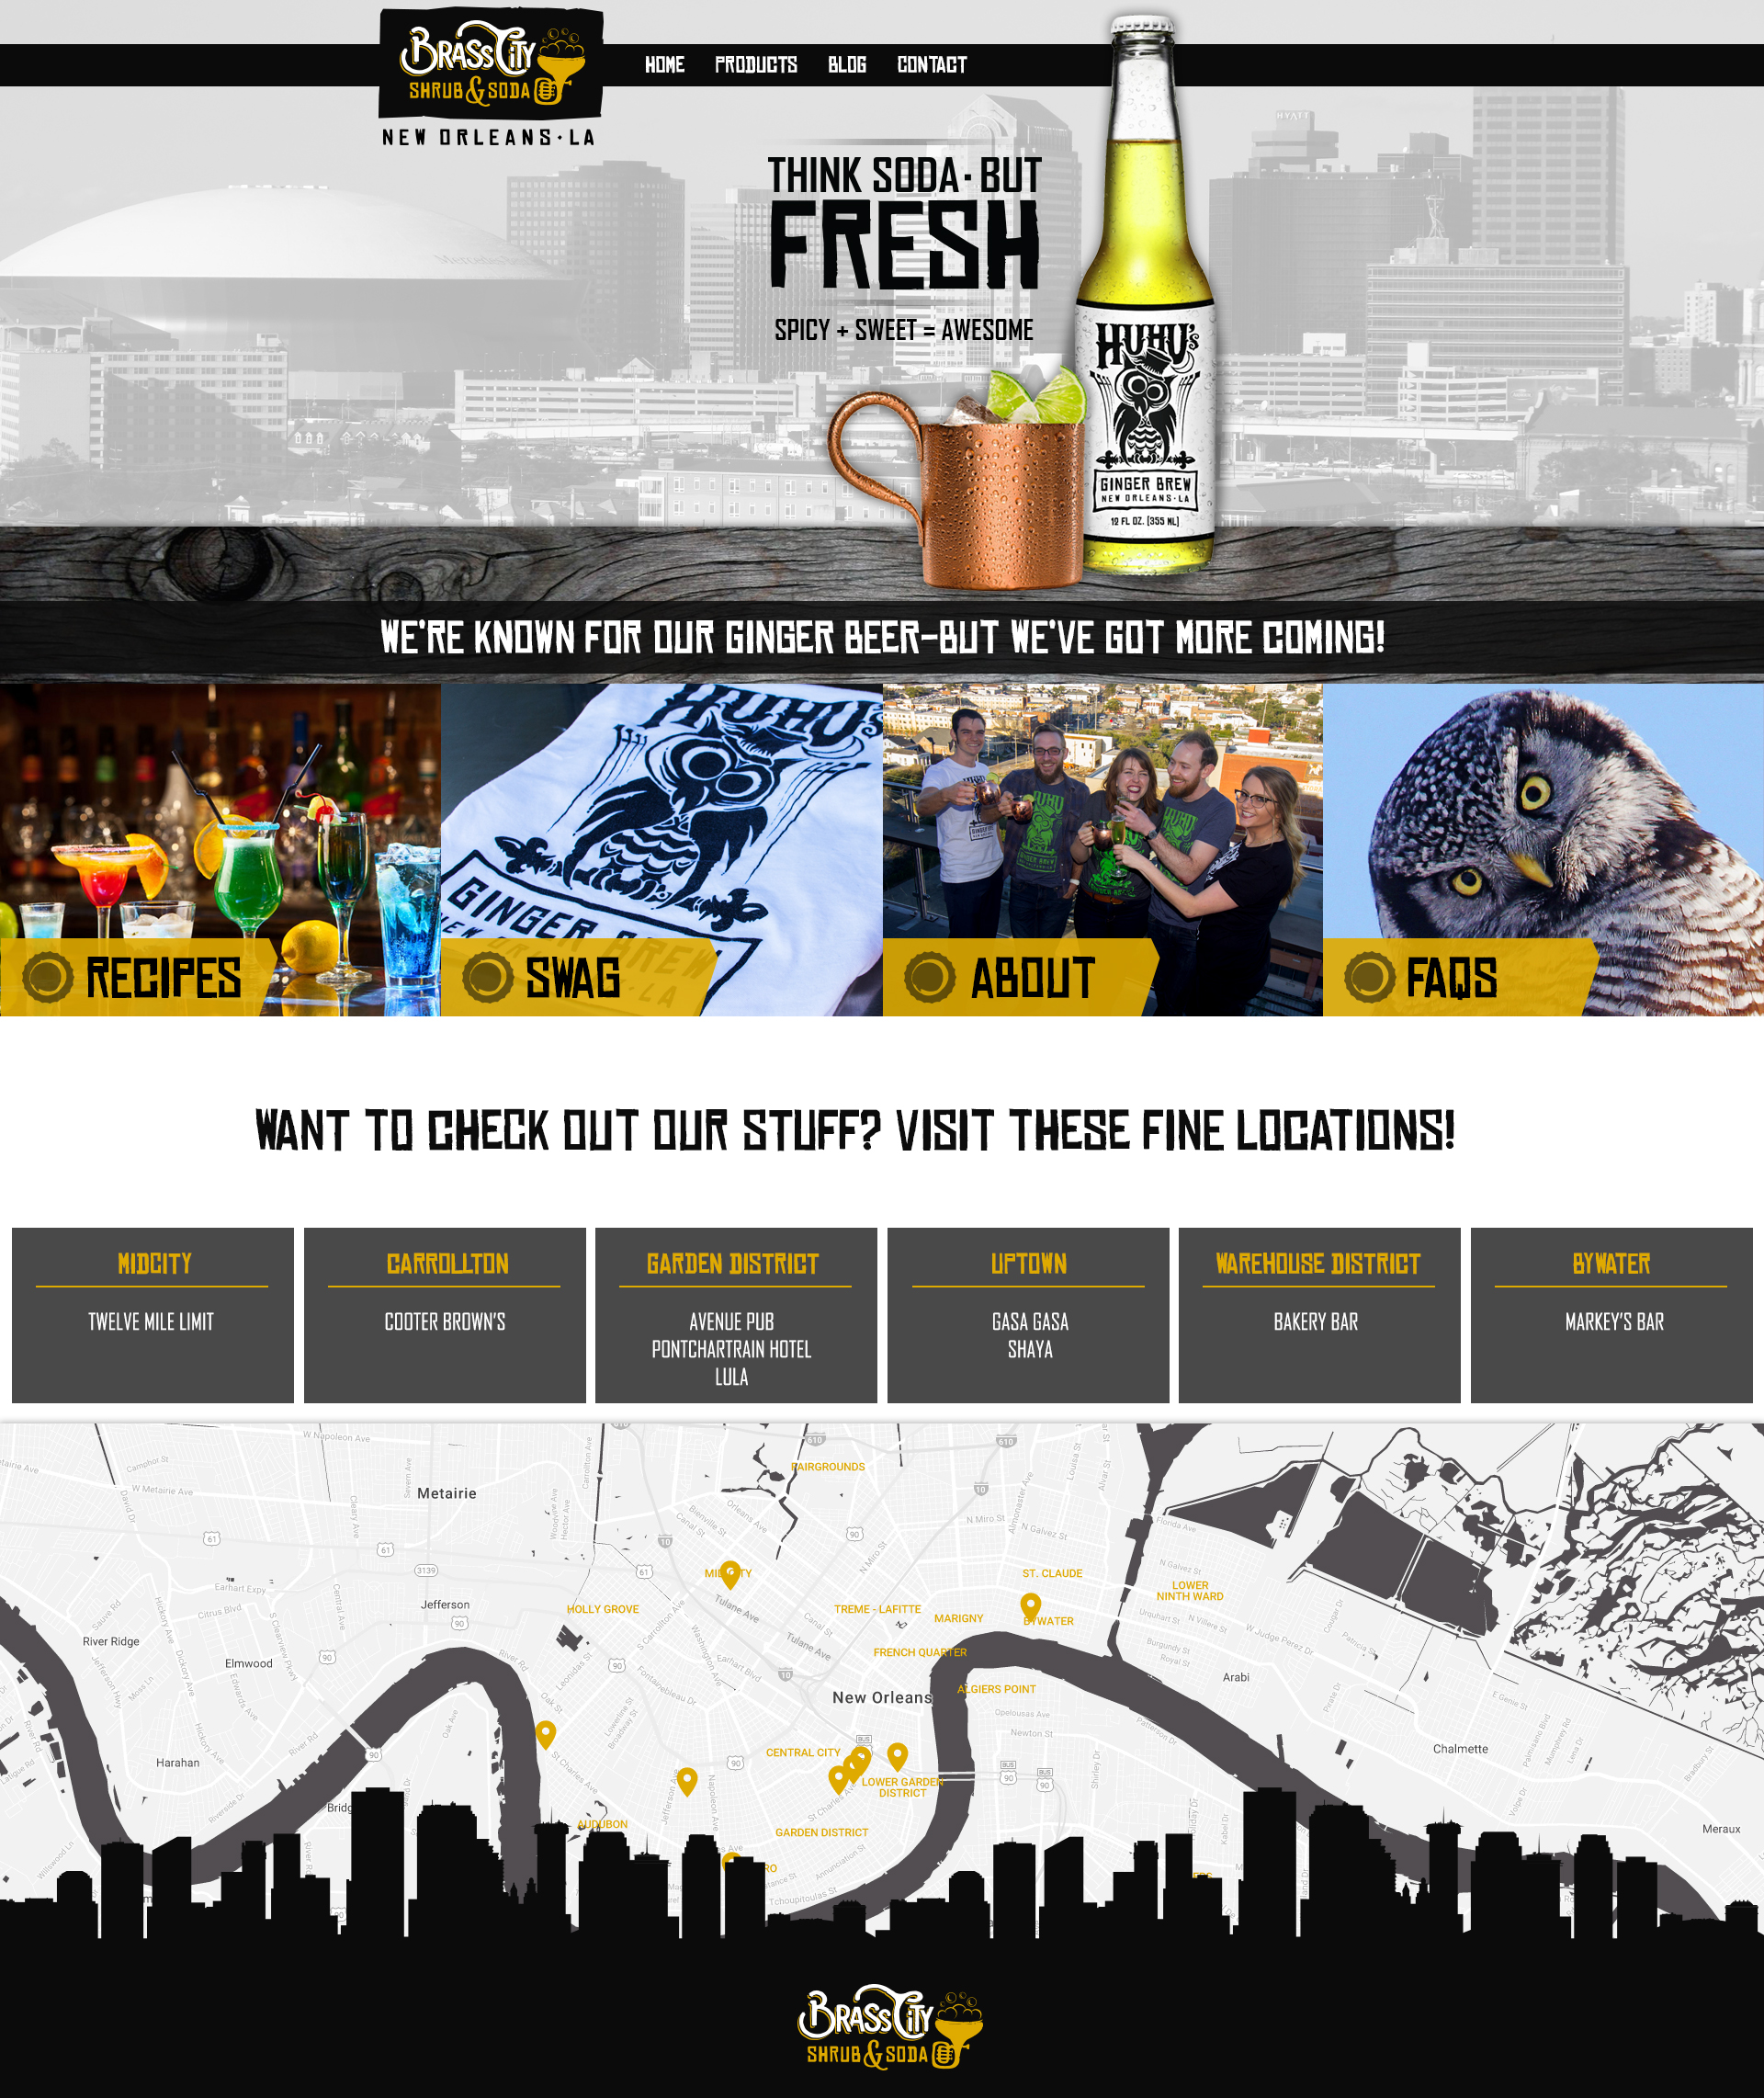 A ginger beer web design screenshot for a company in New Orleans LA